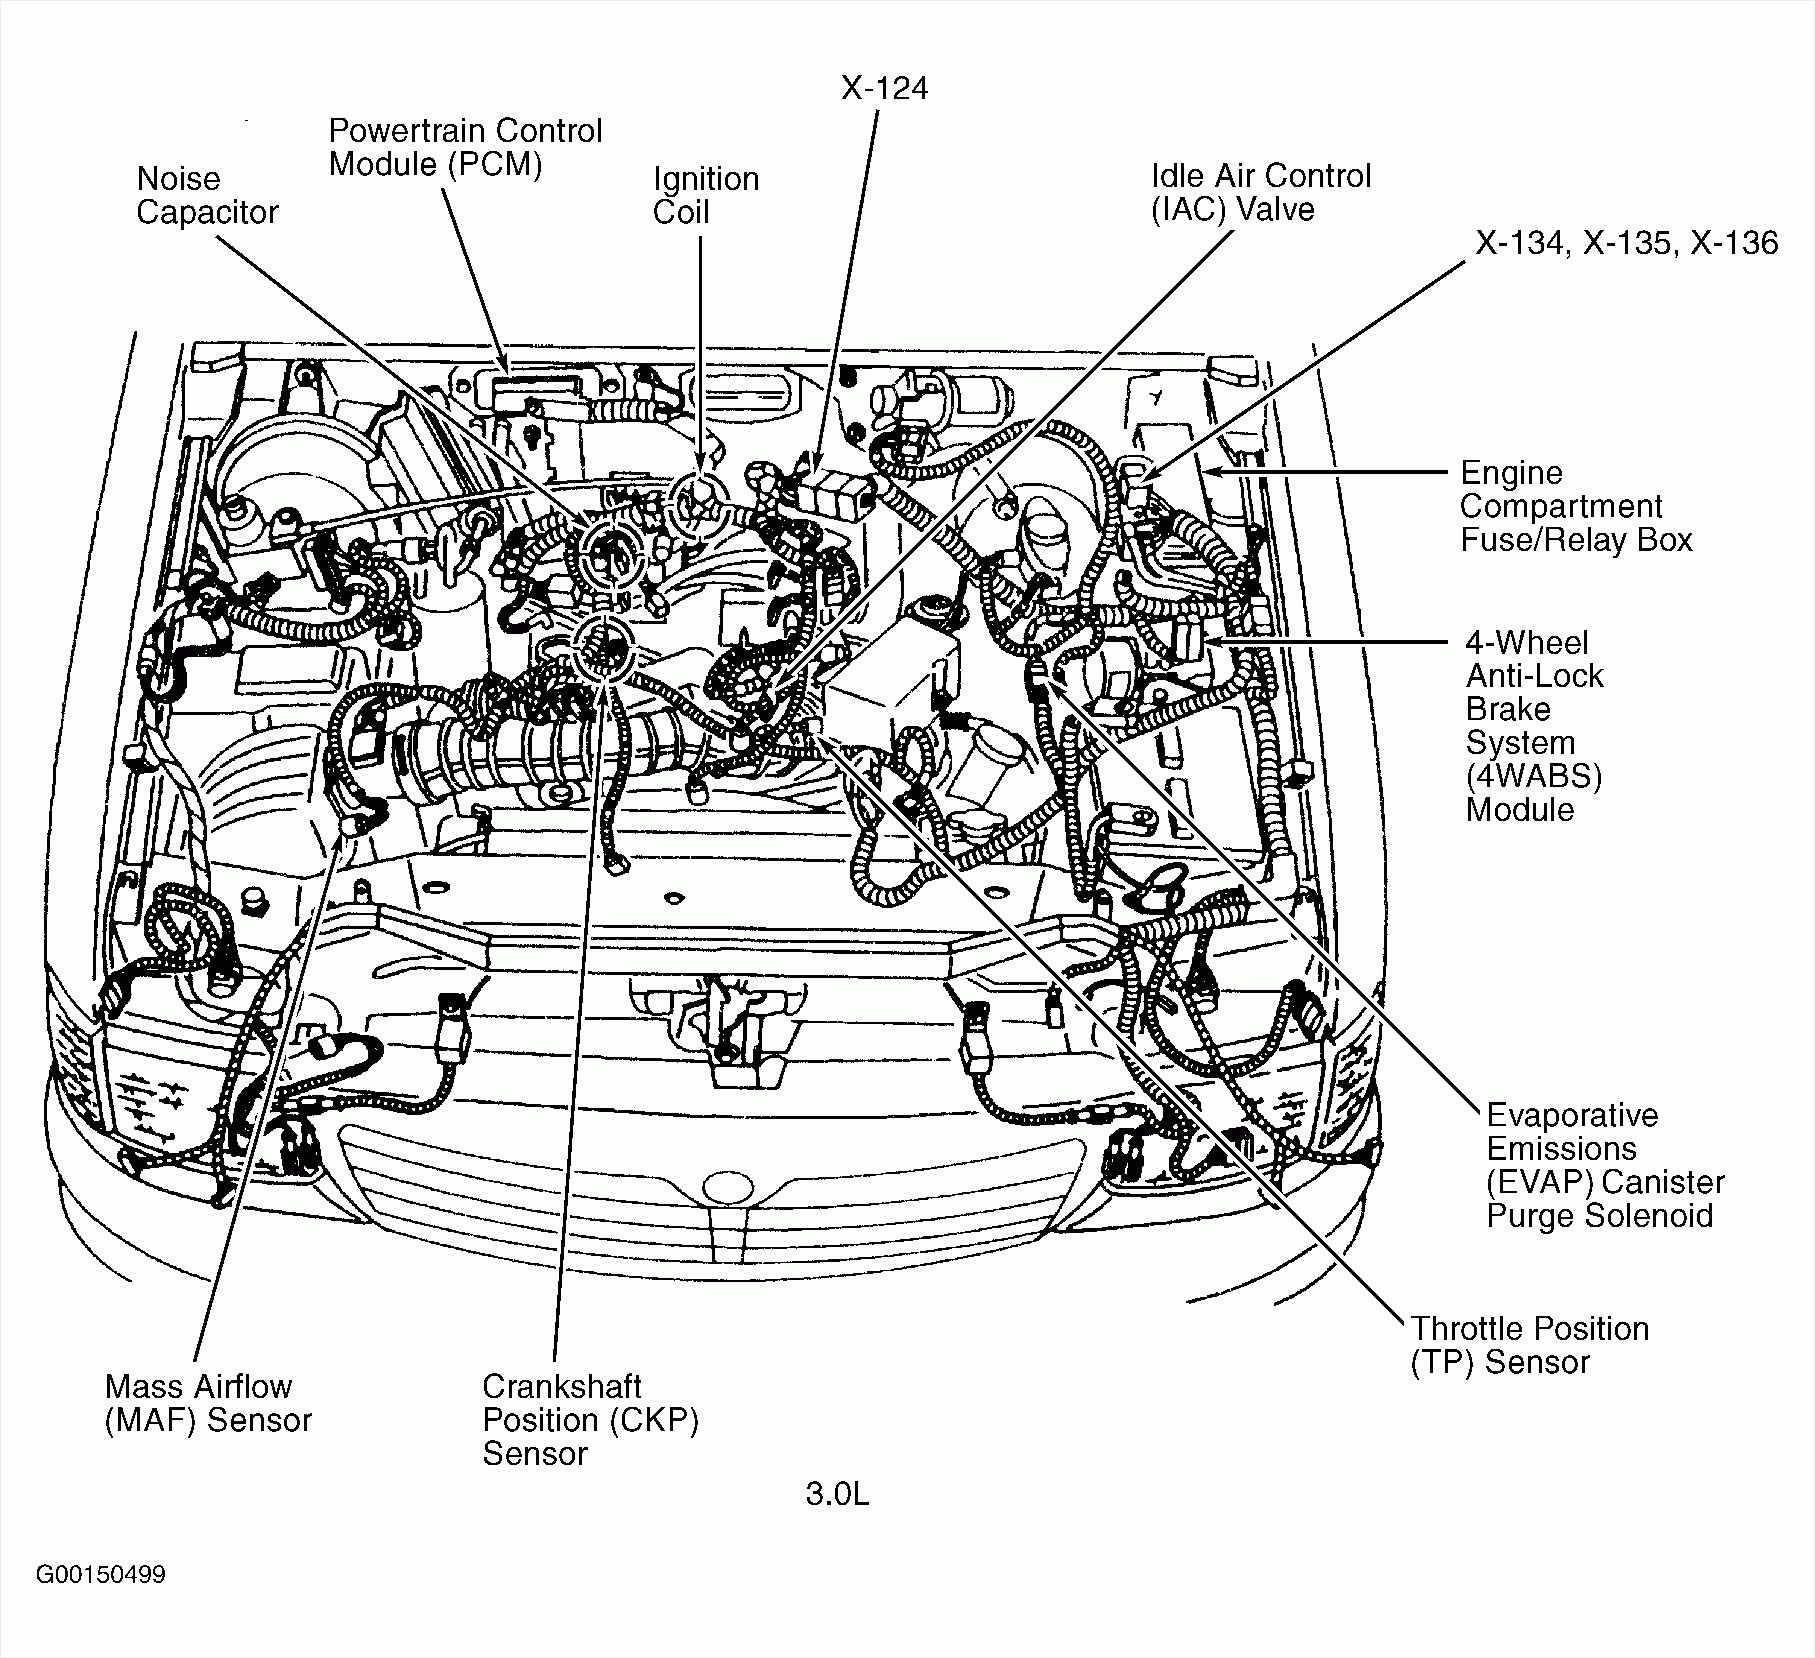 hight resolution of 95 chevy camaro gm 3 4l v6 engine diagram online wiring diagram1995 chevrolet 3 4 engine